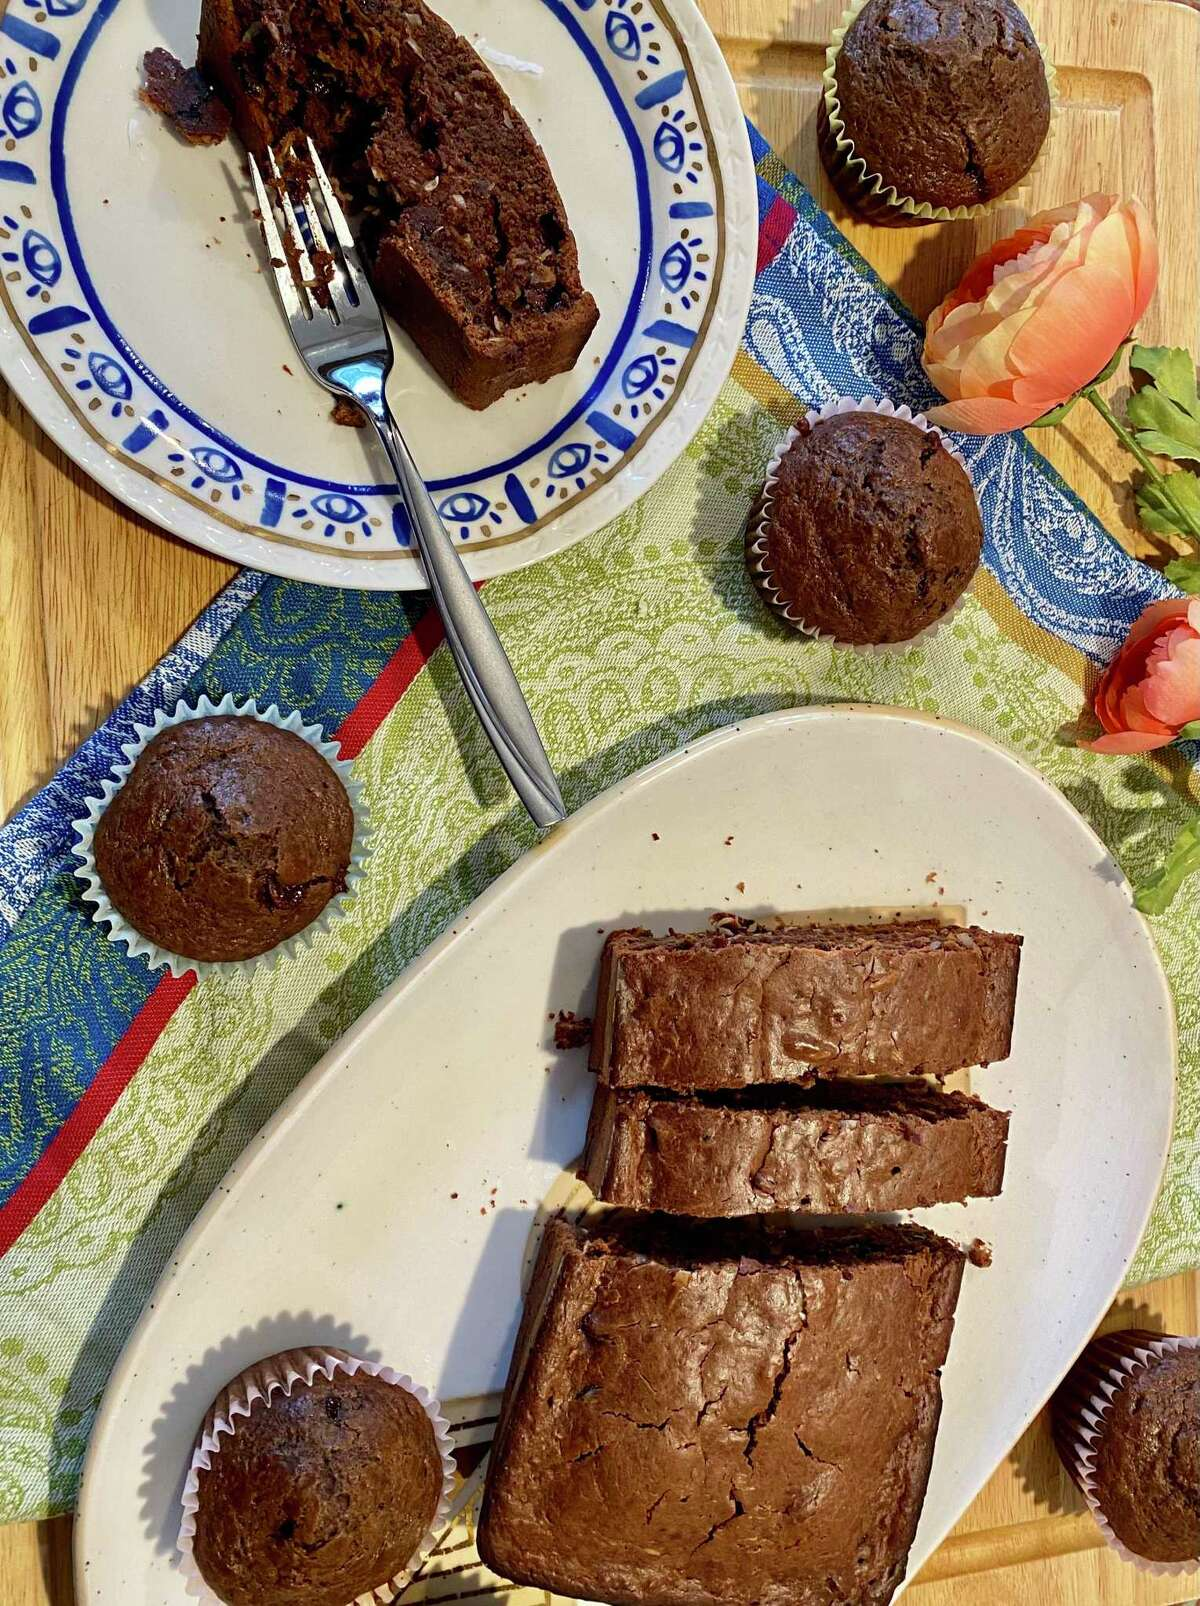 Sneak something healthy into your dessert with chocolate coconut zucchini bread.